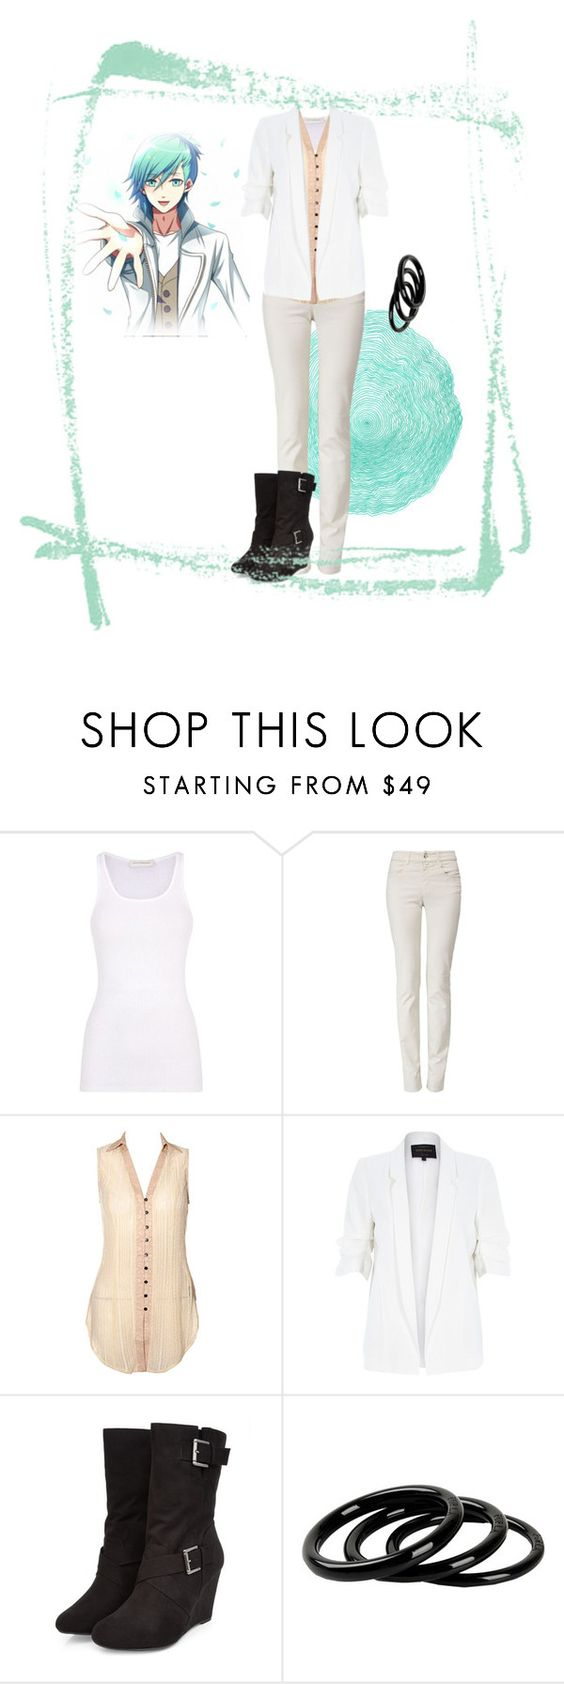 """""""Ai Mikaze Casual Cosplay (2000%)"""" by psychometorzi ❤ liked on Polyvore featuring Faith Connexion, Armani Jeans, River Island and Furla"""